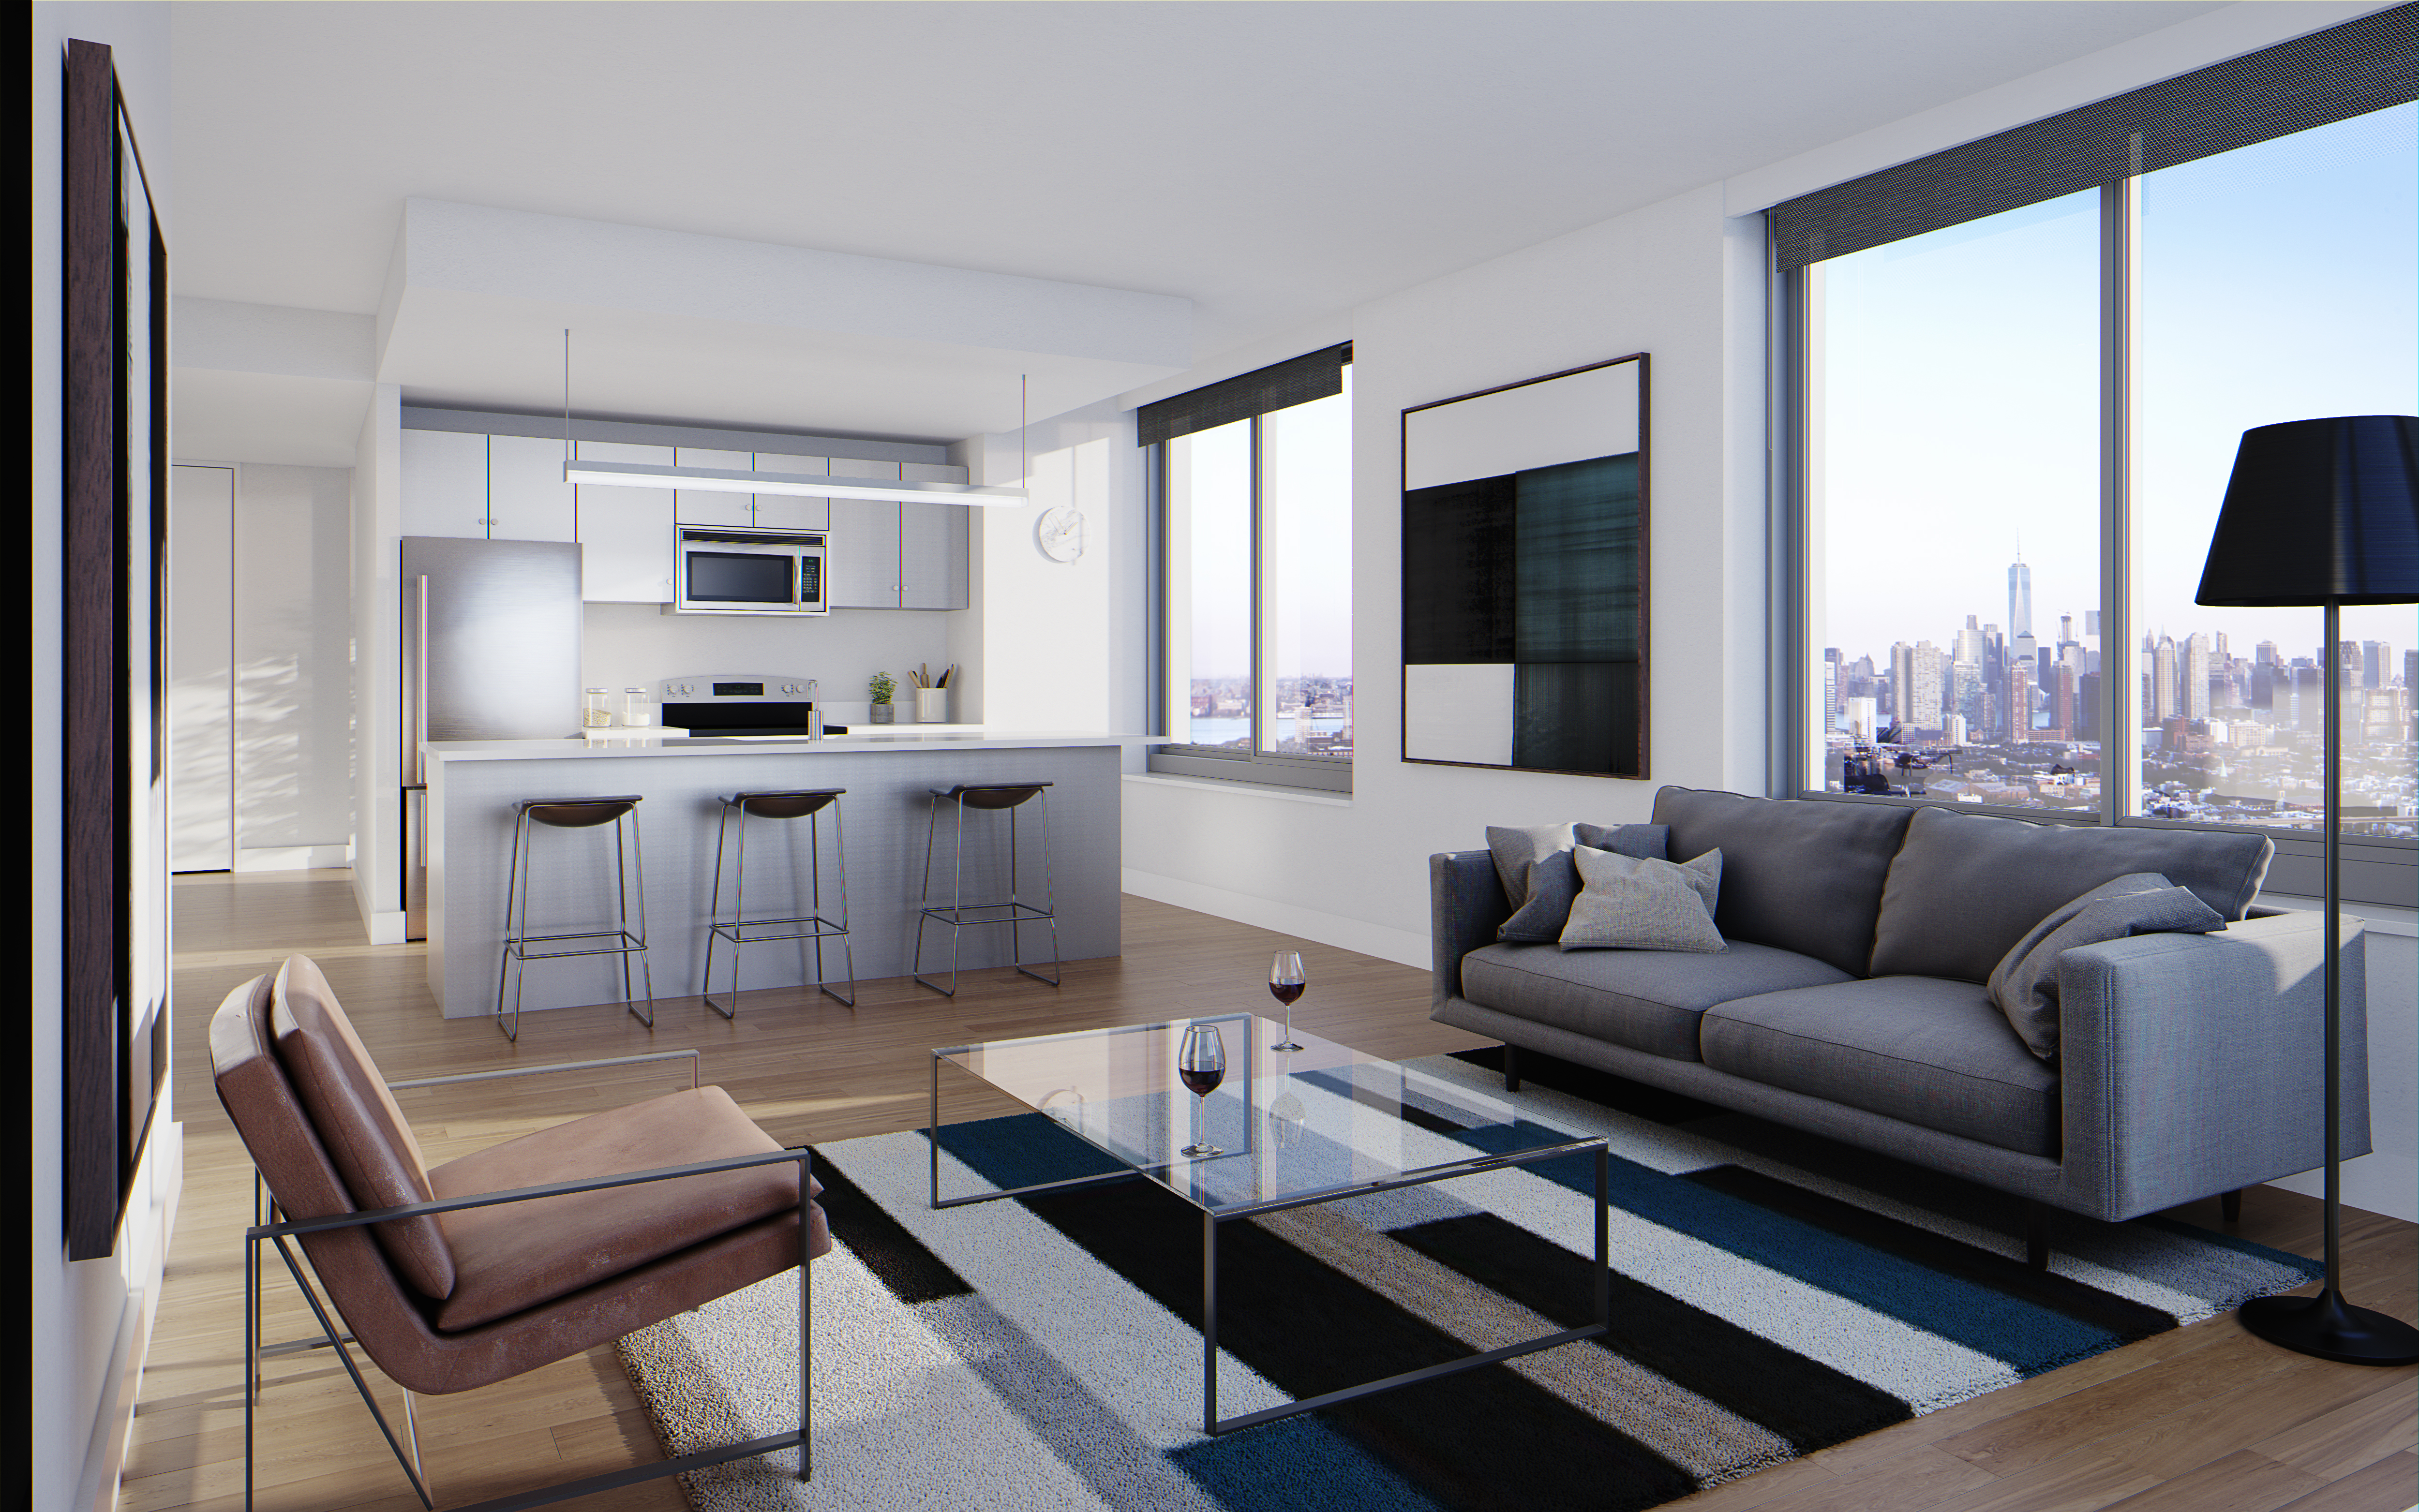 journal squared u0027s first jersey city apartment tower launches